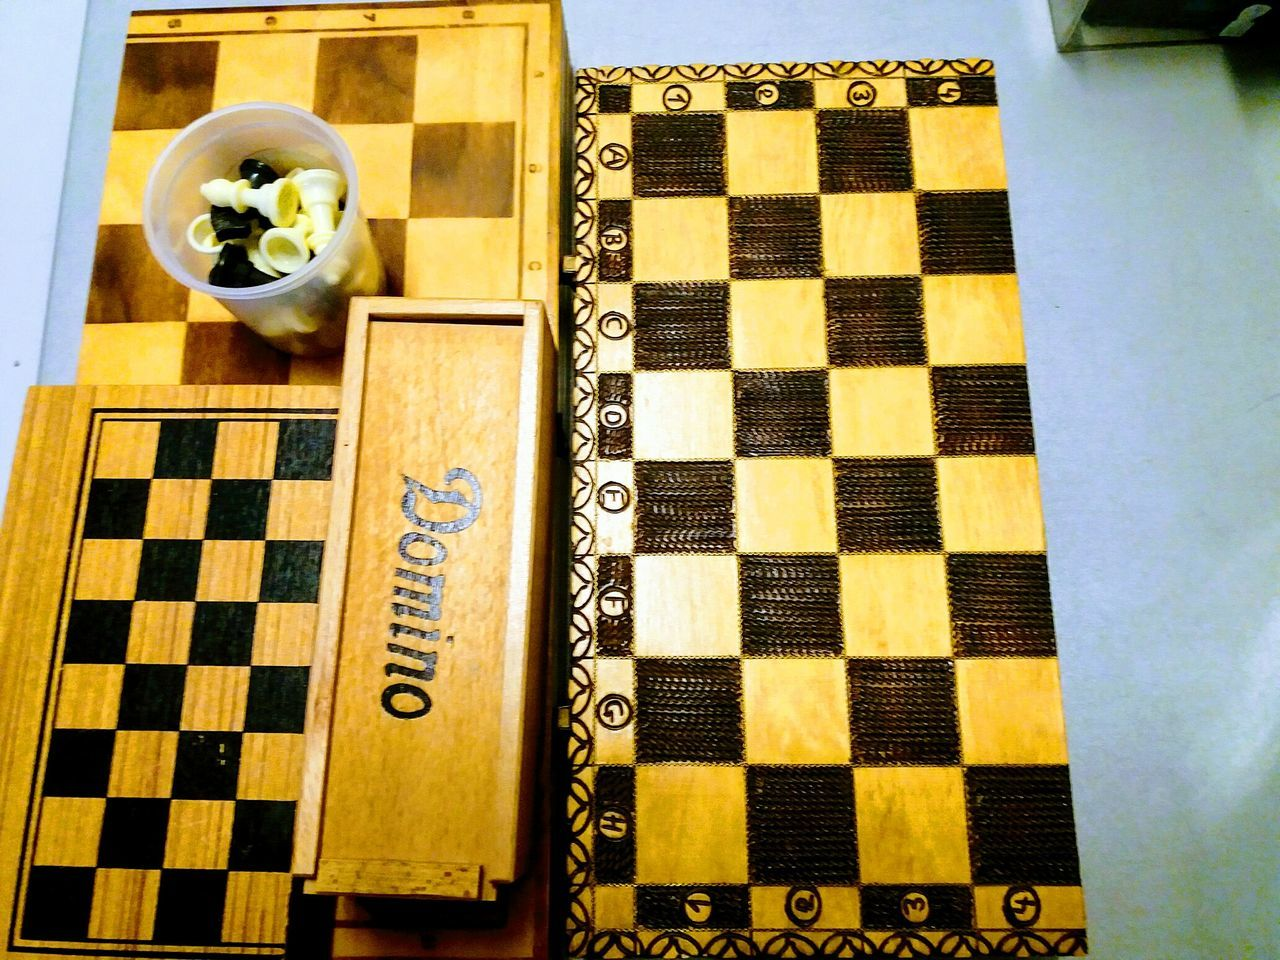 vintage parlourgames Indoors  Pattern No People Chess Board Dominoes Parlourgames Chess Chess Pieces Chessboard Chess Game Chess Set Boardgames Vintage